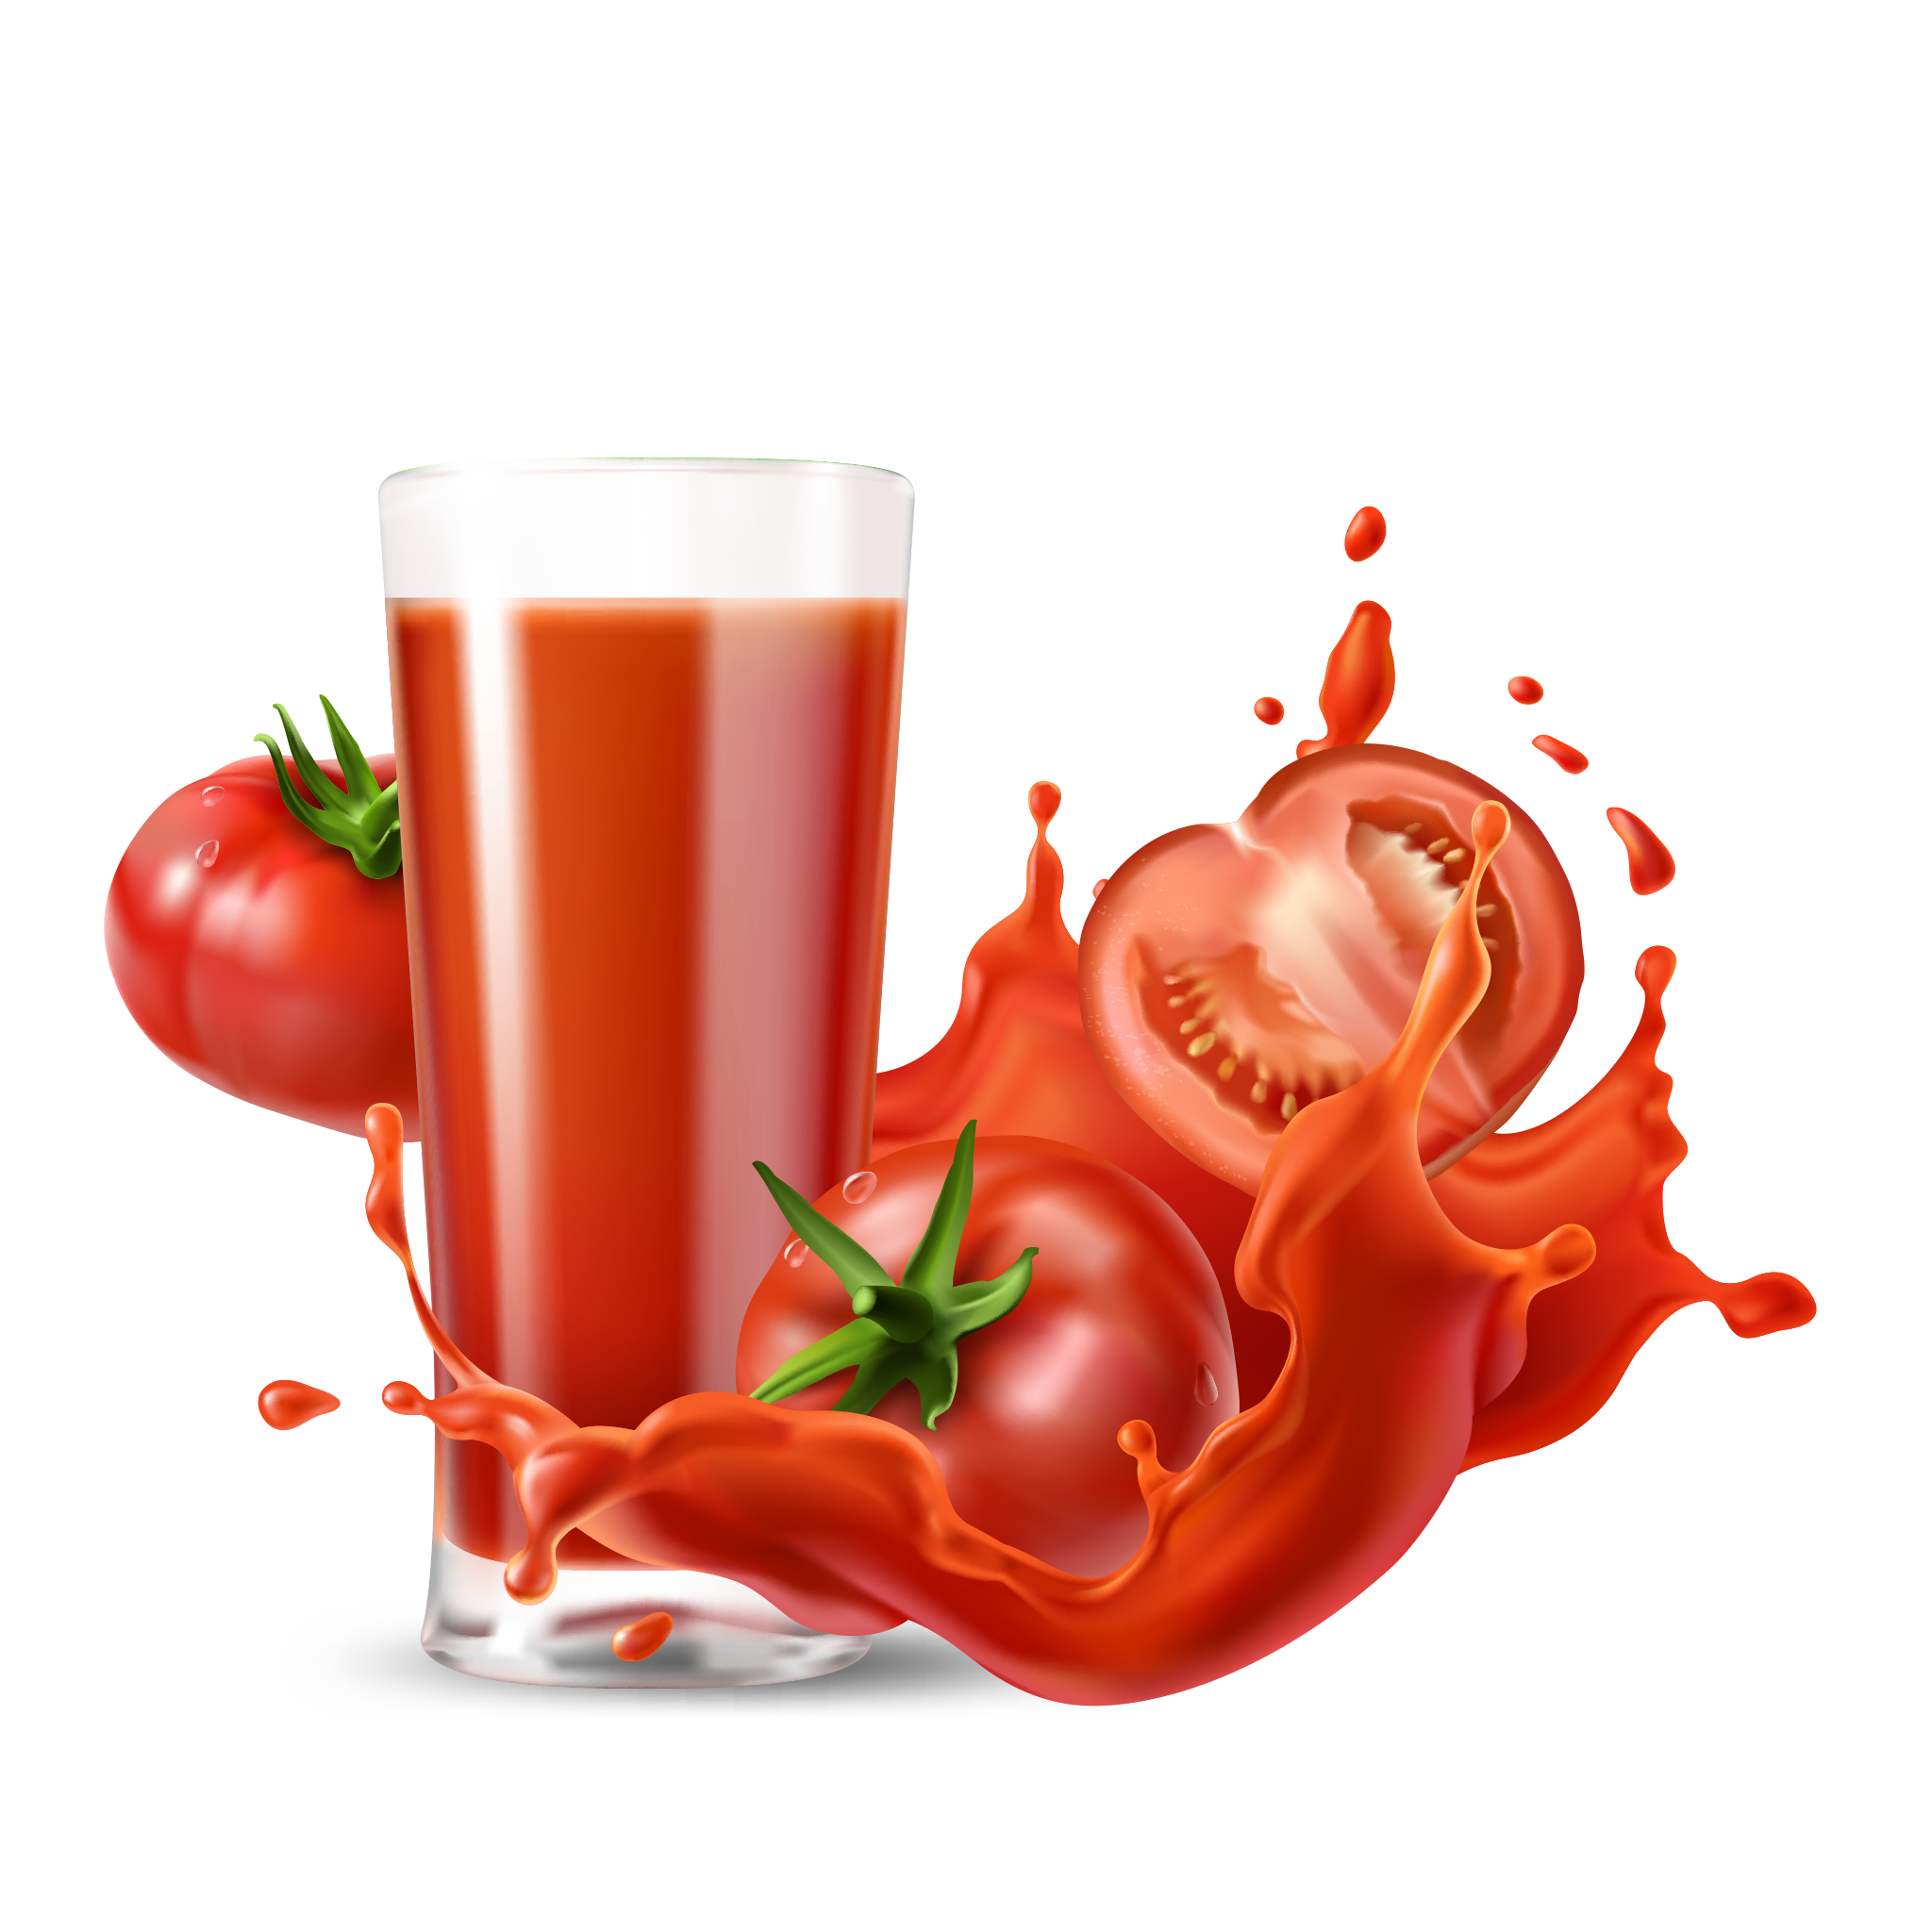 Tomato juice clipart picture free library Tomato Juice PNG | HD Tomato Juice PNG Image Free Download picture free library